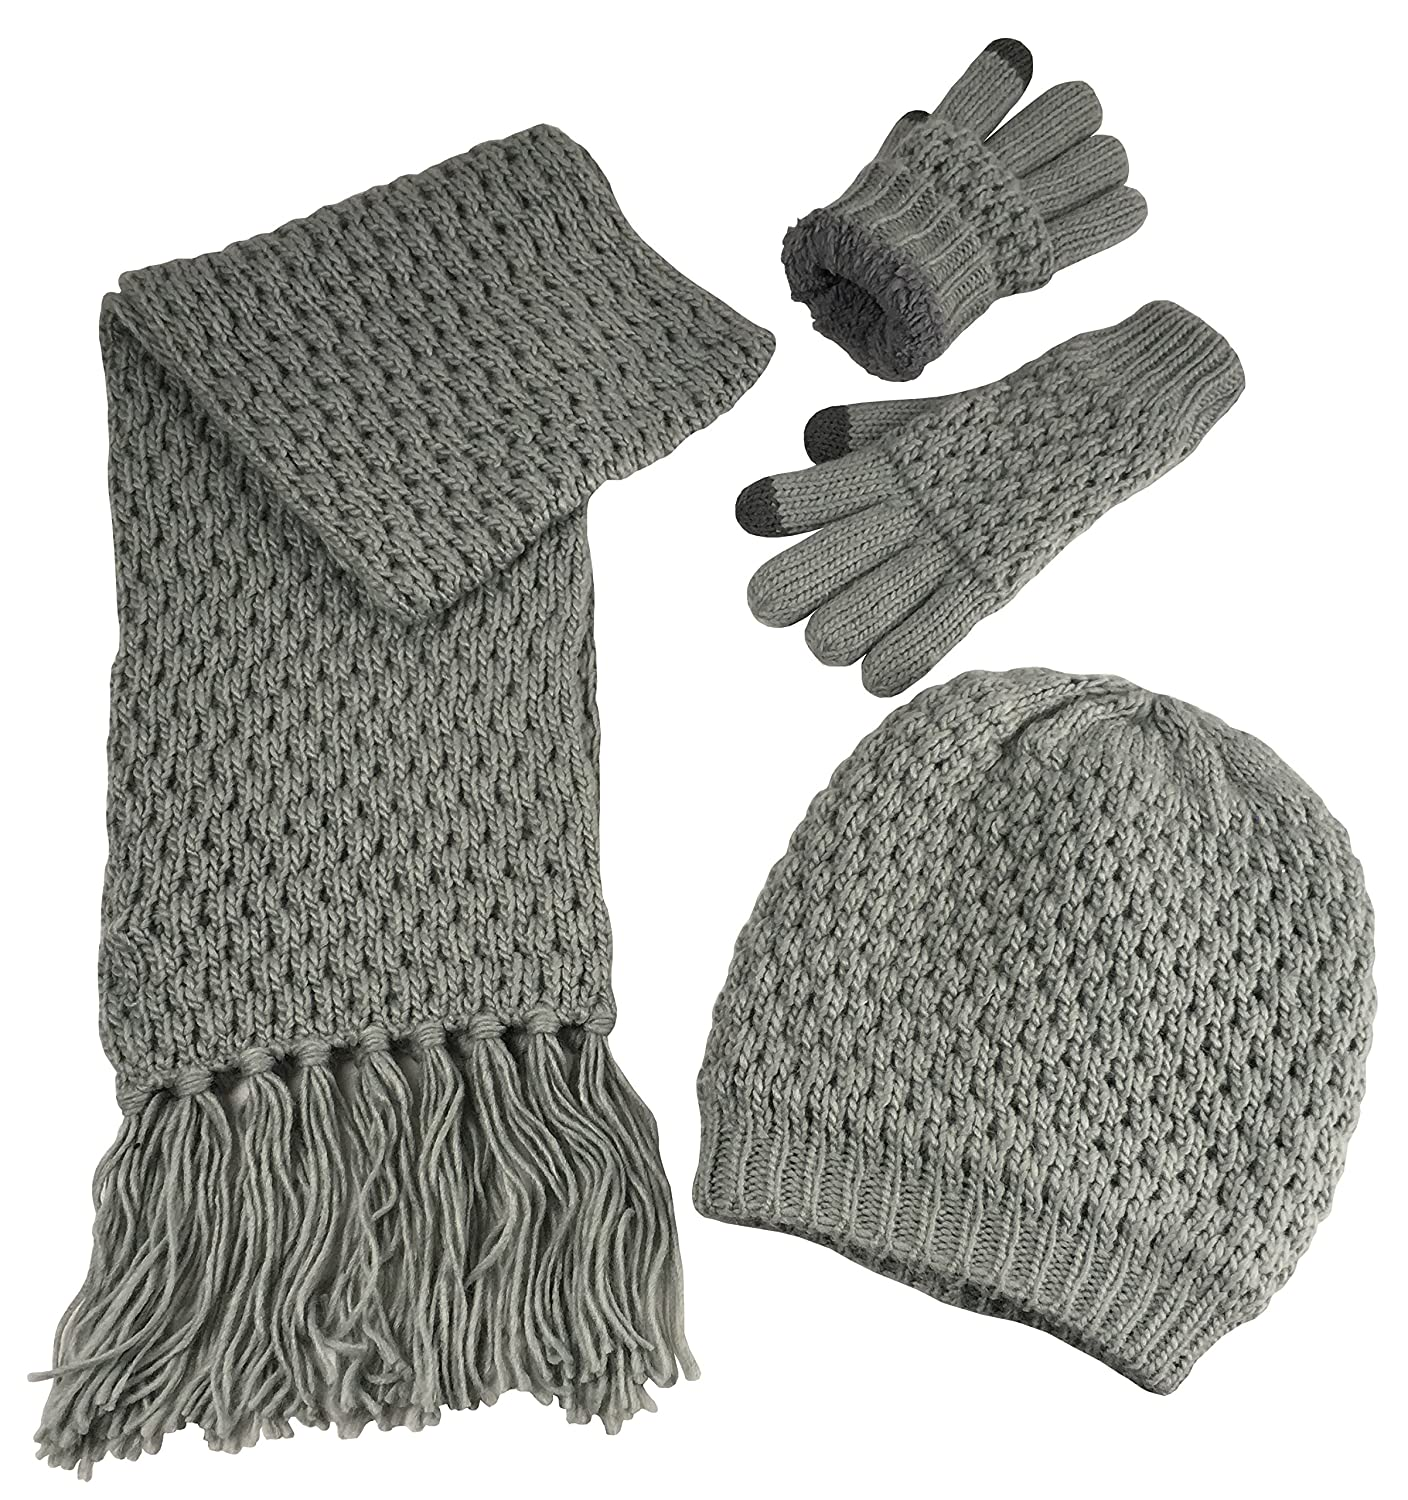 4d19eec2509 N Ice Caps Women s Beanie Scarf Gloves 3PC Set Sherpa Lined Popcorn Stitch  at Amazon Women s Clothing store